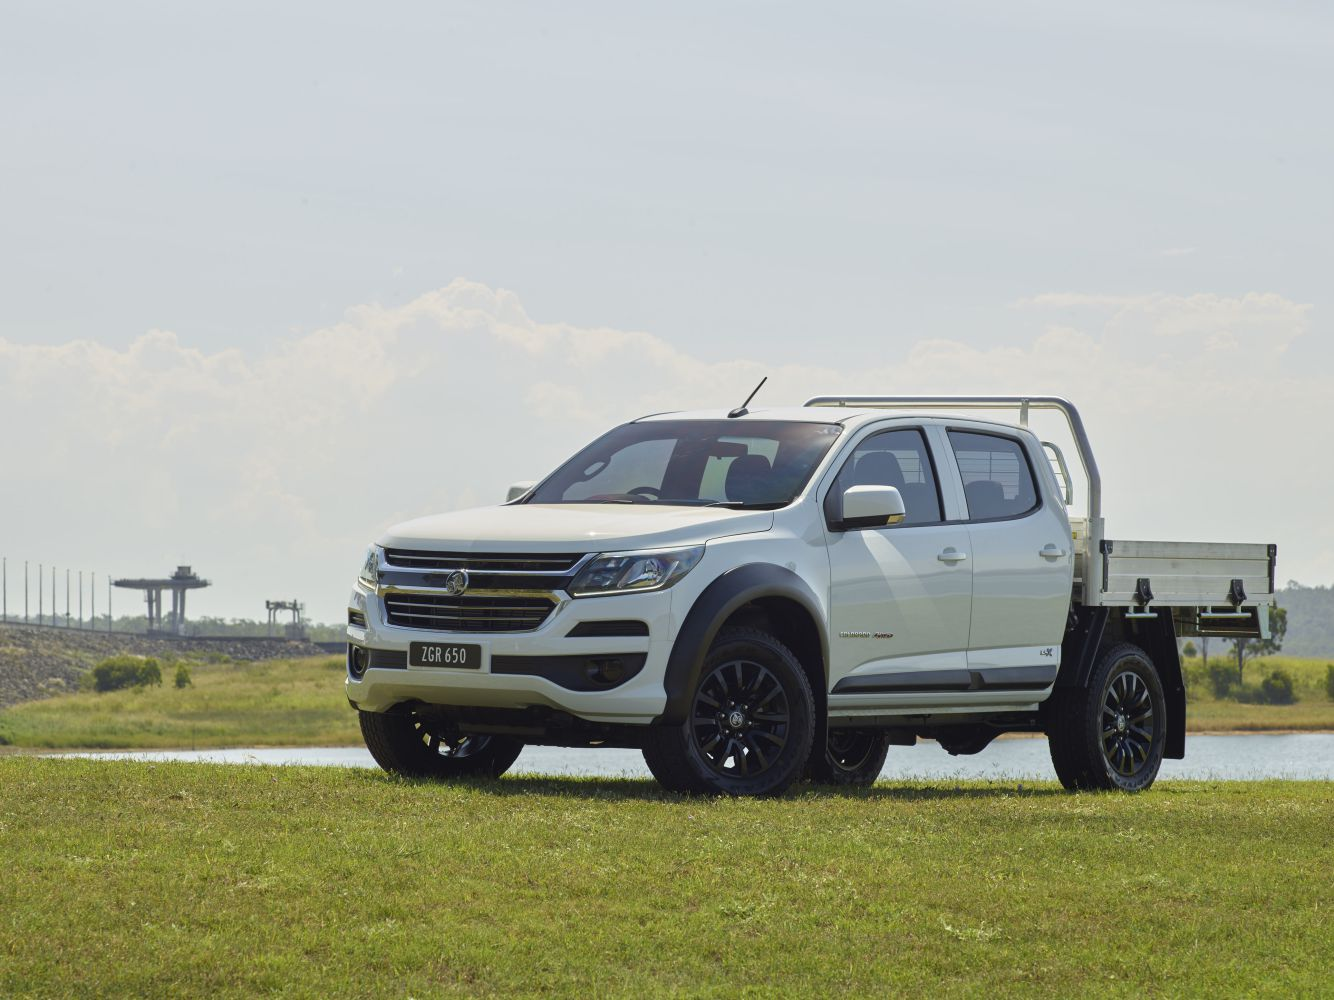 2018 Holden Colorado LSX specs and pricing - CarConversation